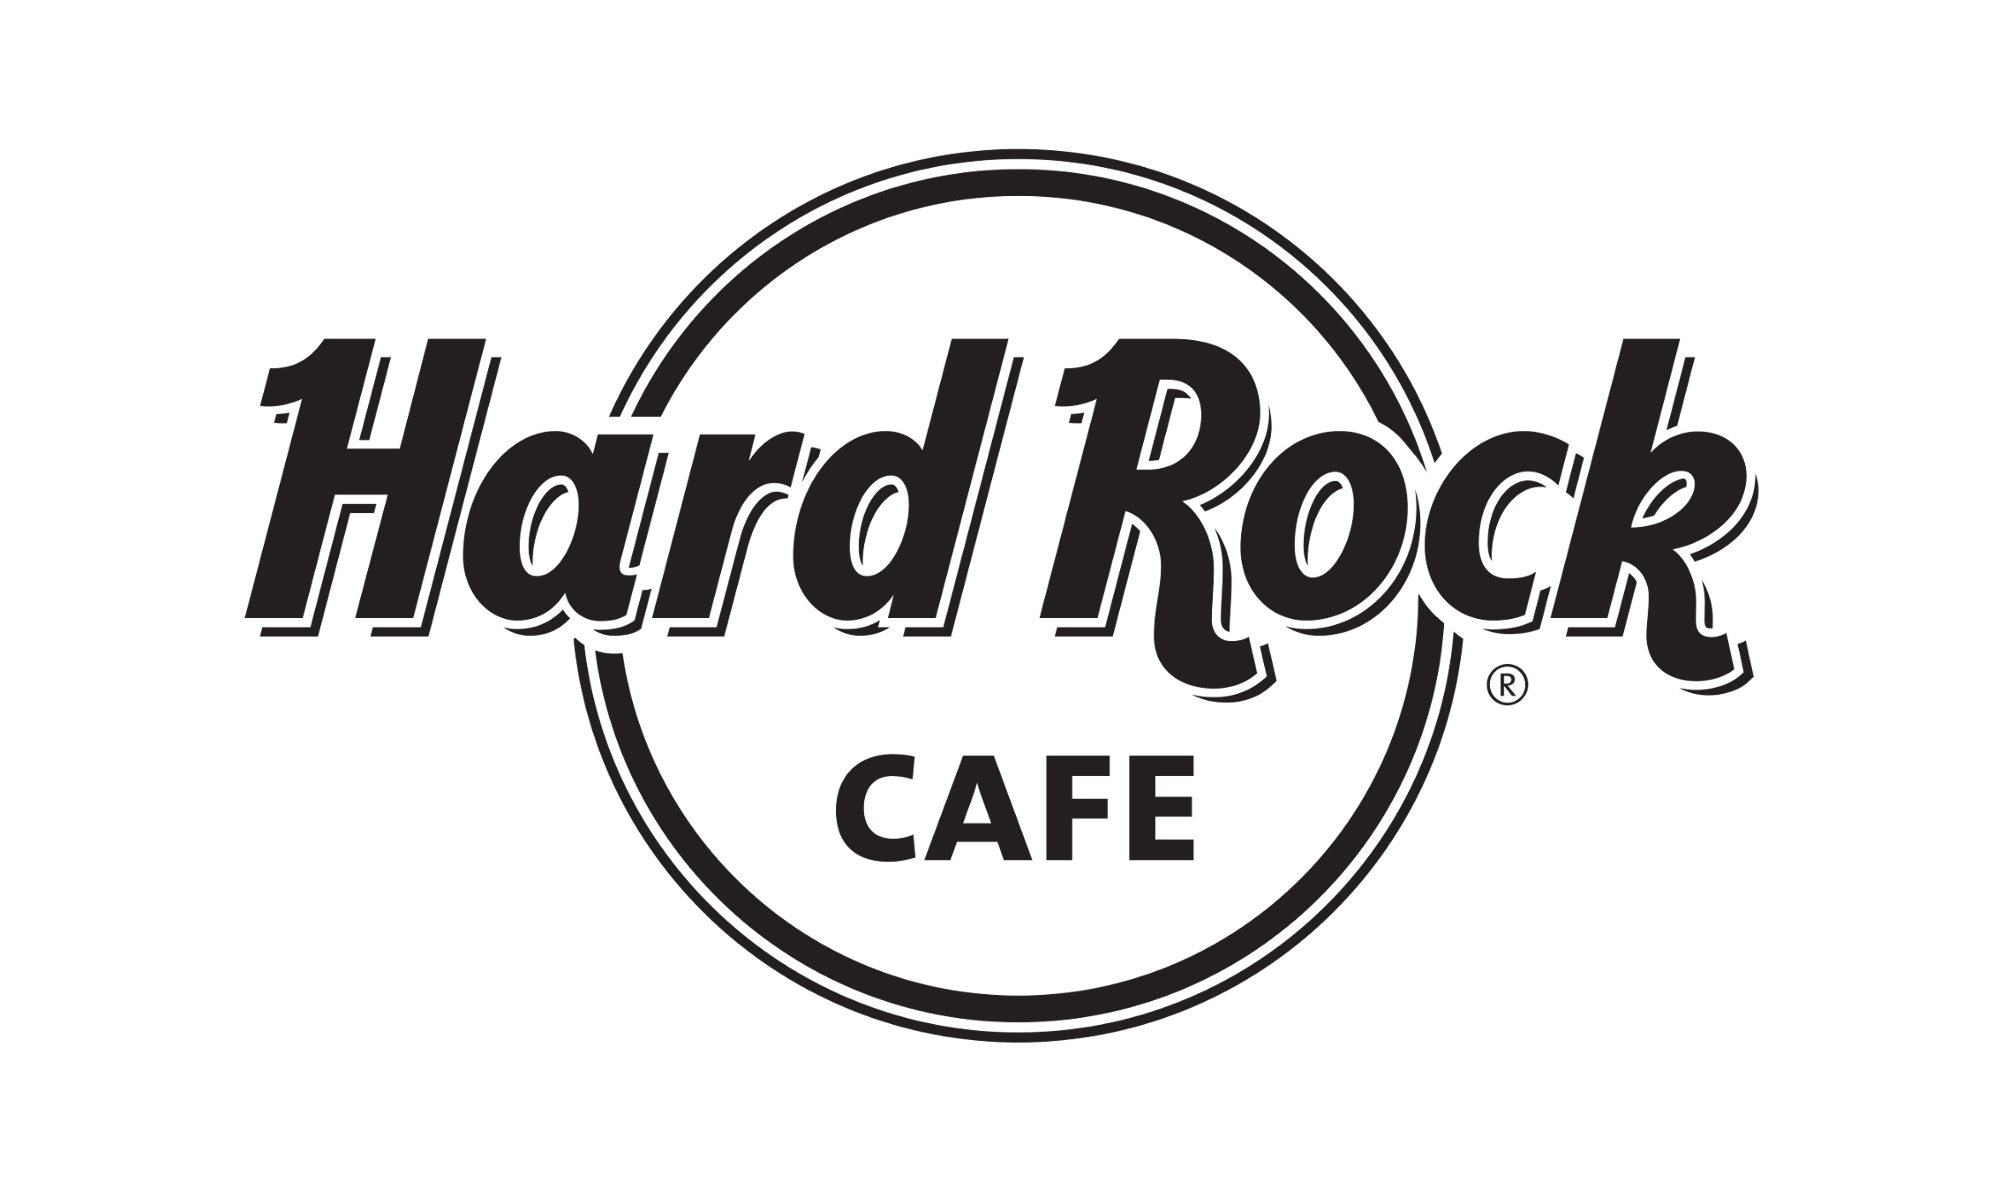 Kisspng hard rock cafe logo brand tumblr 5b5571f9eb0ce9.9286102715323263939628